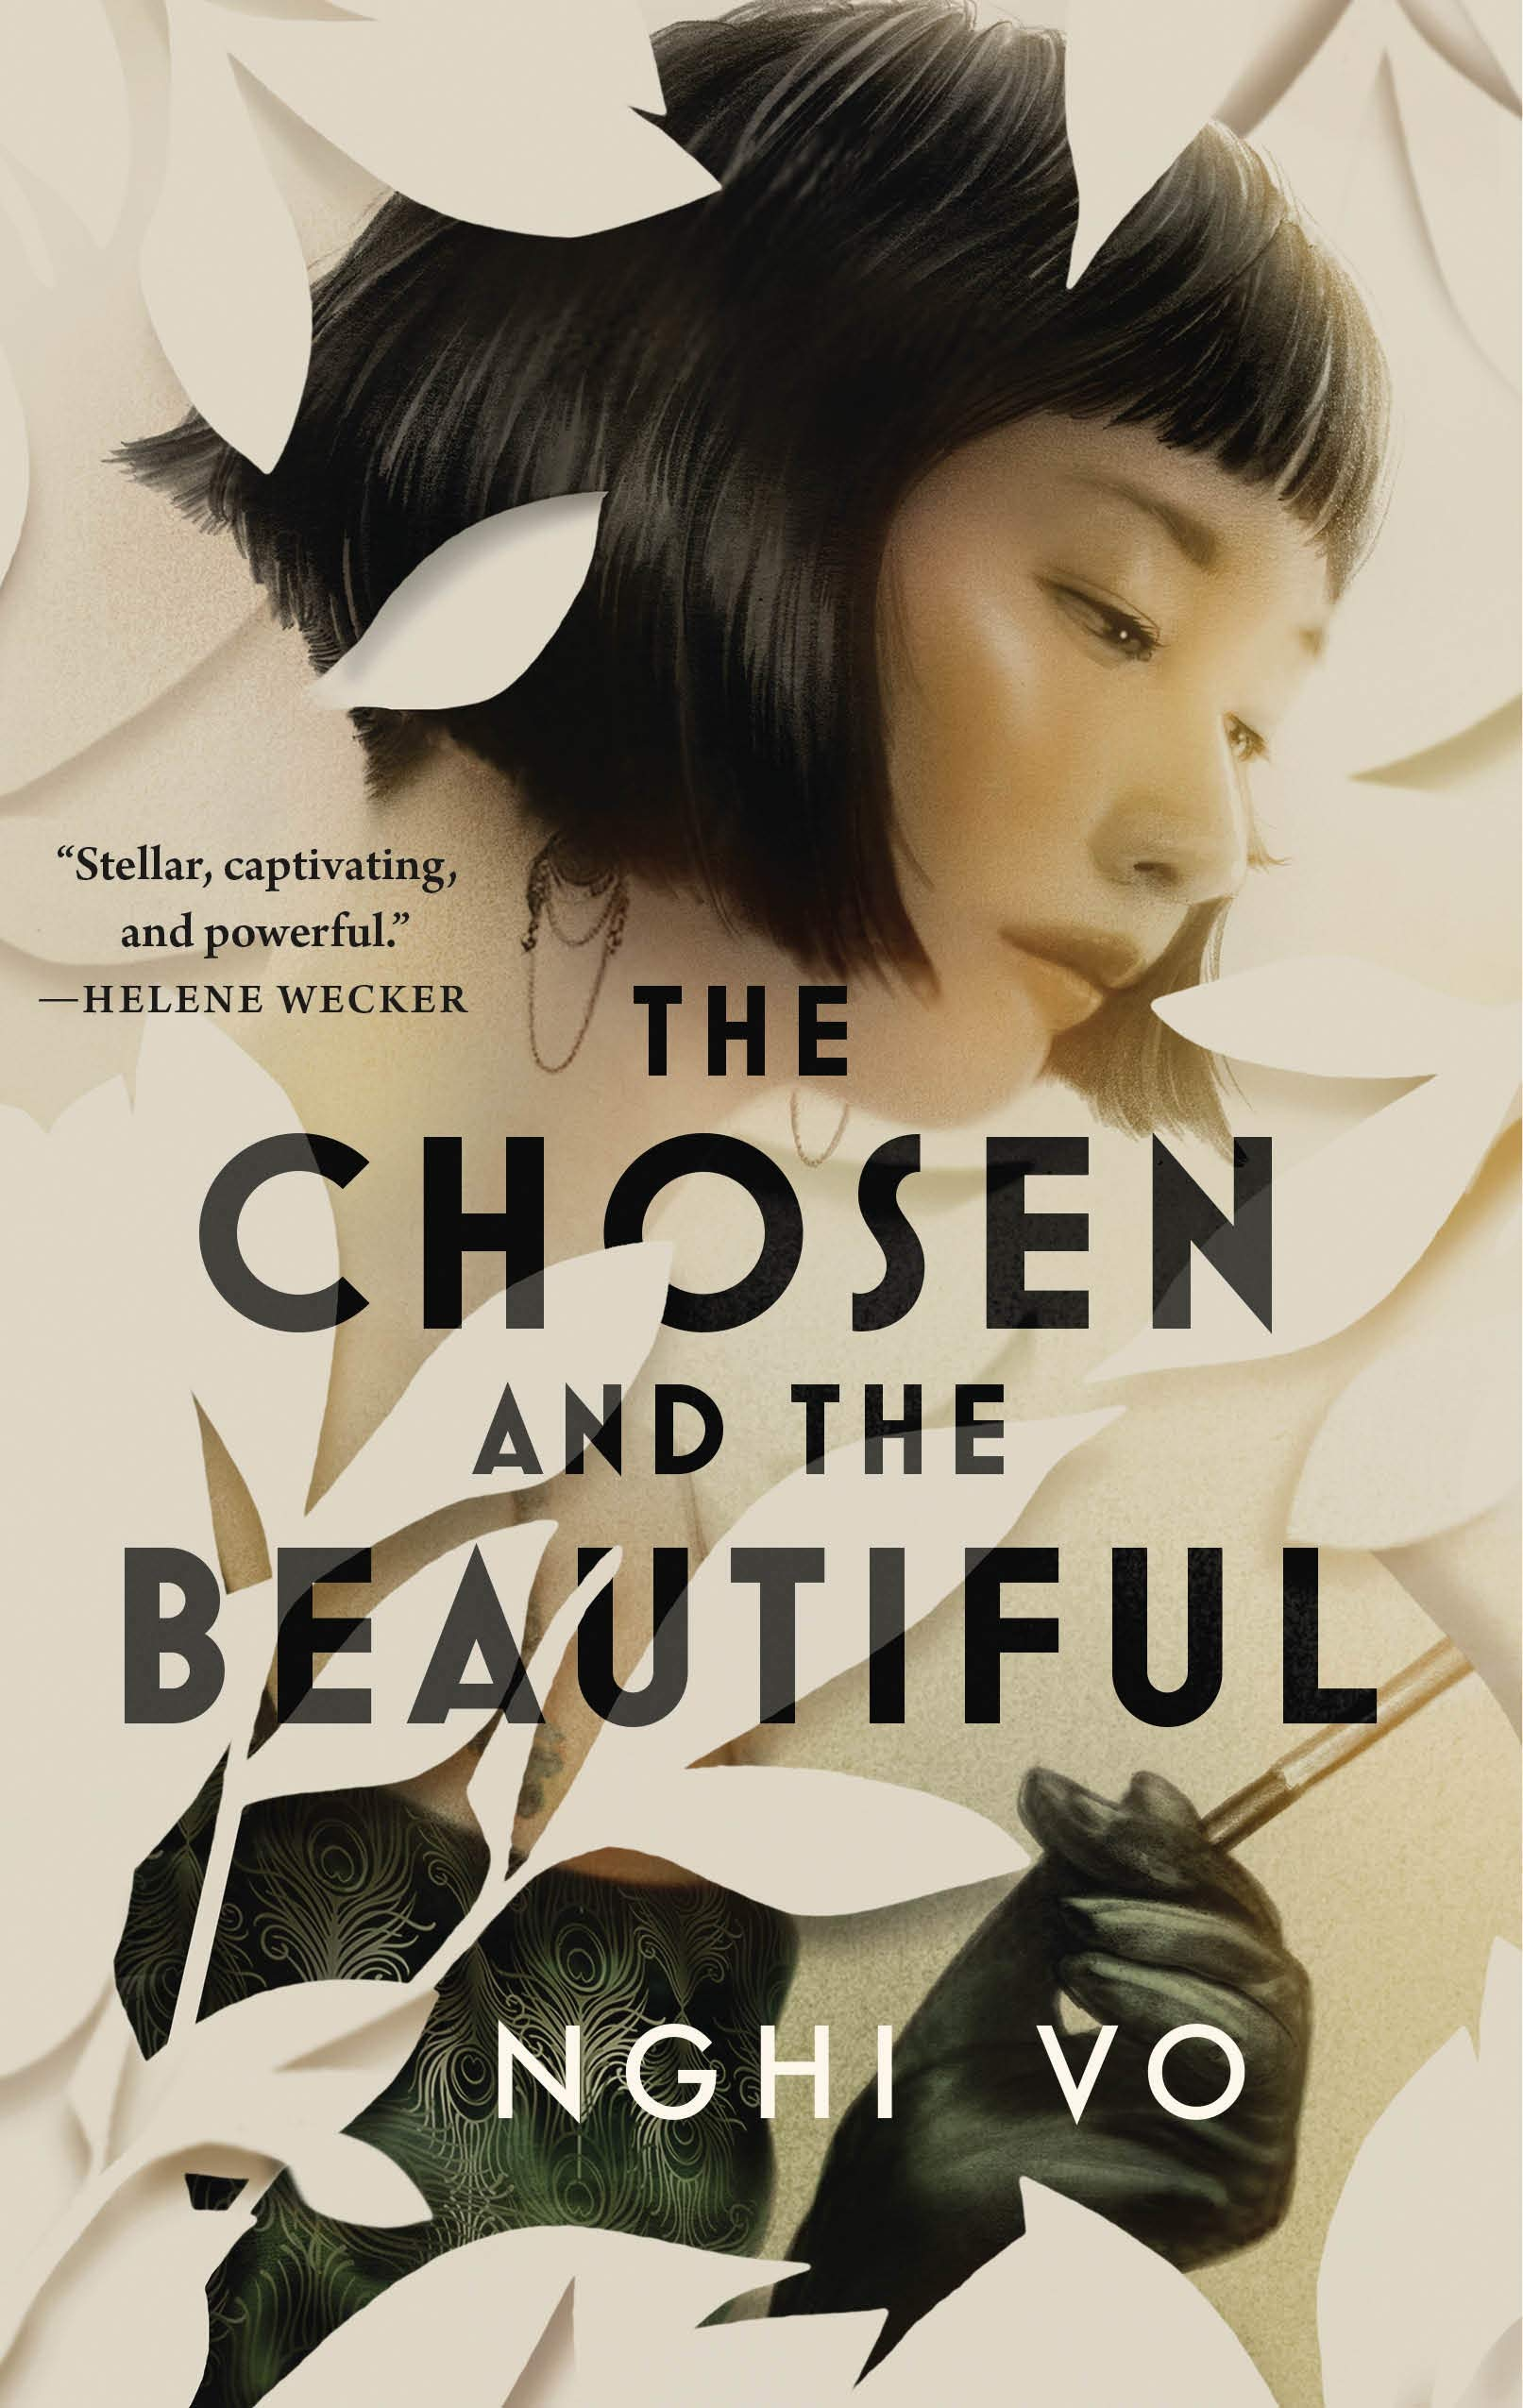 Amazon.com: The Chosen and the Beautiful (9781250784780): Vo, Nghi: Books